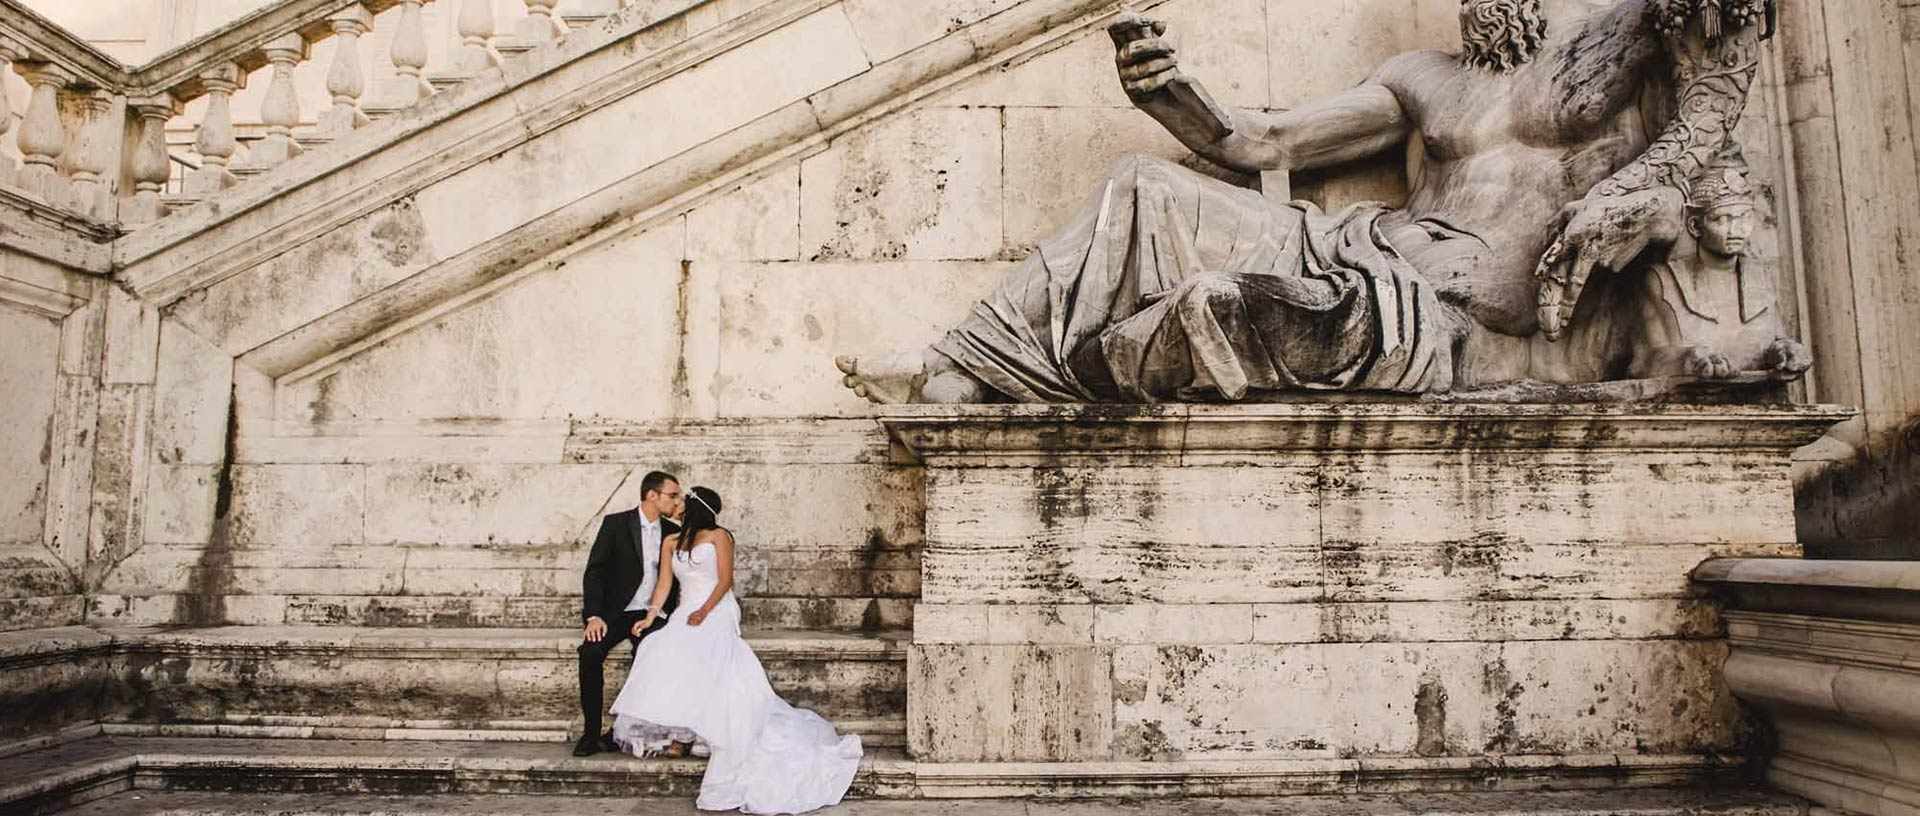 Elope in Rome